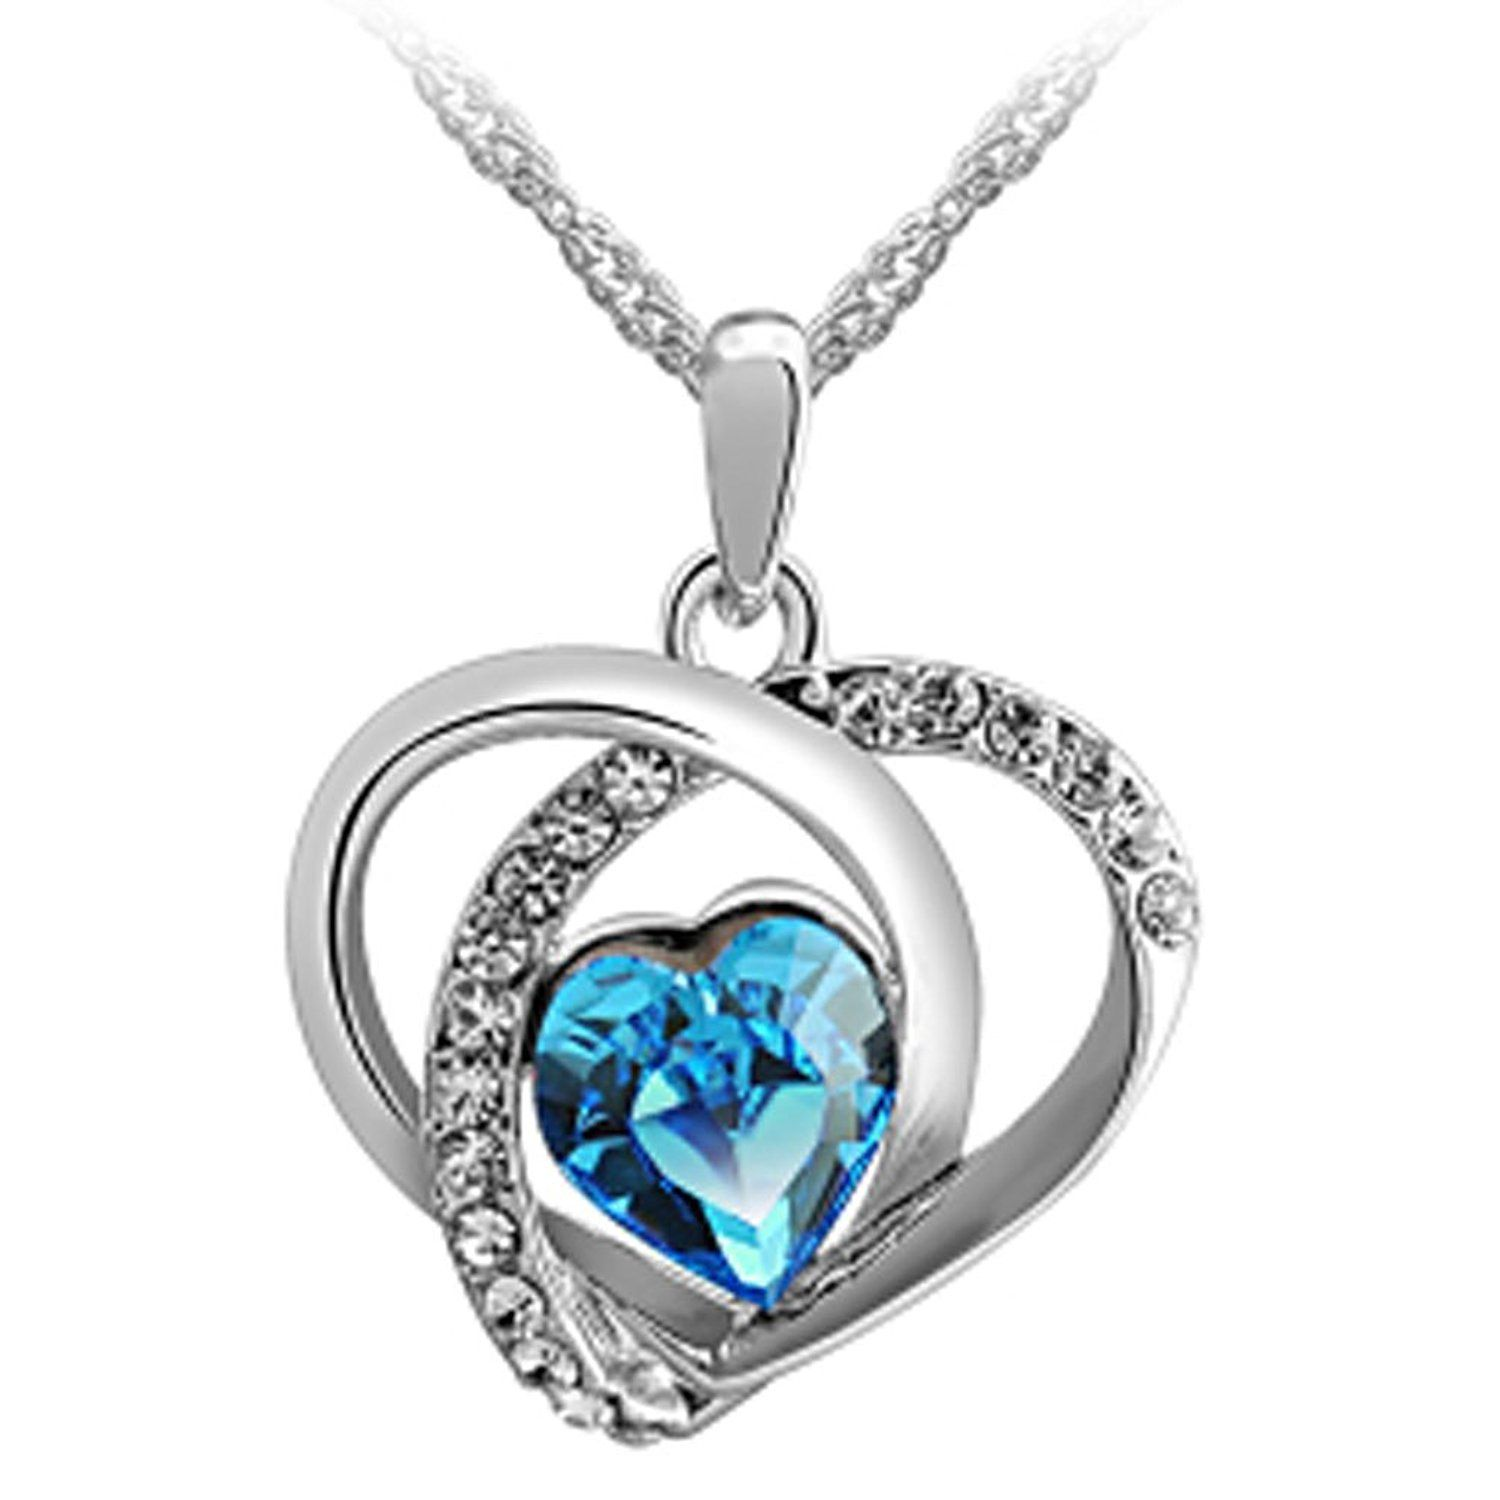 Latigerf Women's White Gold Plated Blue Swarovski Elements Crystal Double Heart Necklace Pendant for Her ** Find out more details by clicking the image : Jewelry Necklaces